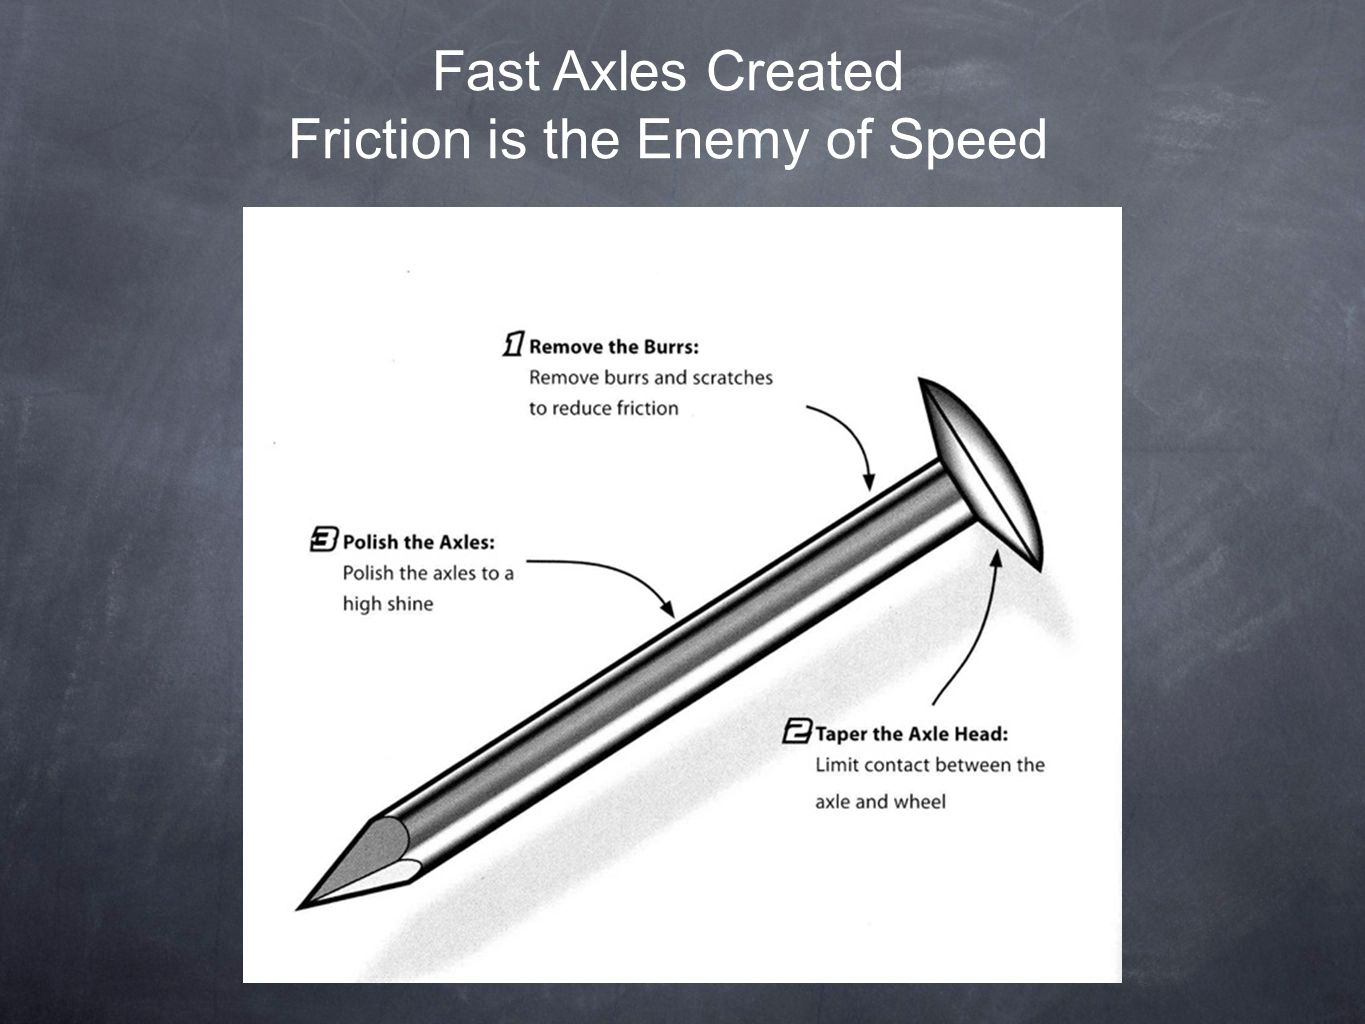 Fast Axles Created Friction is the Enemy of Speed